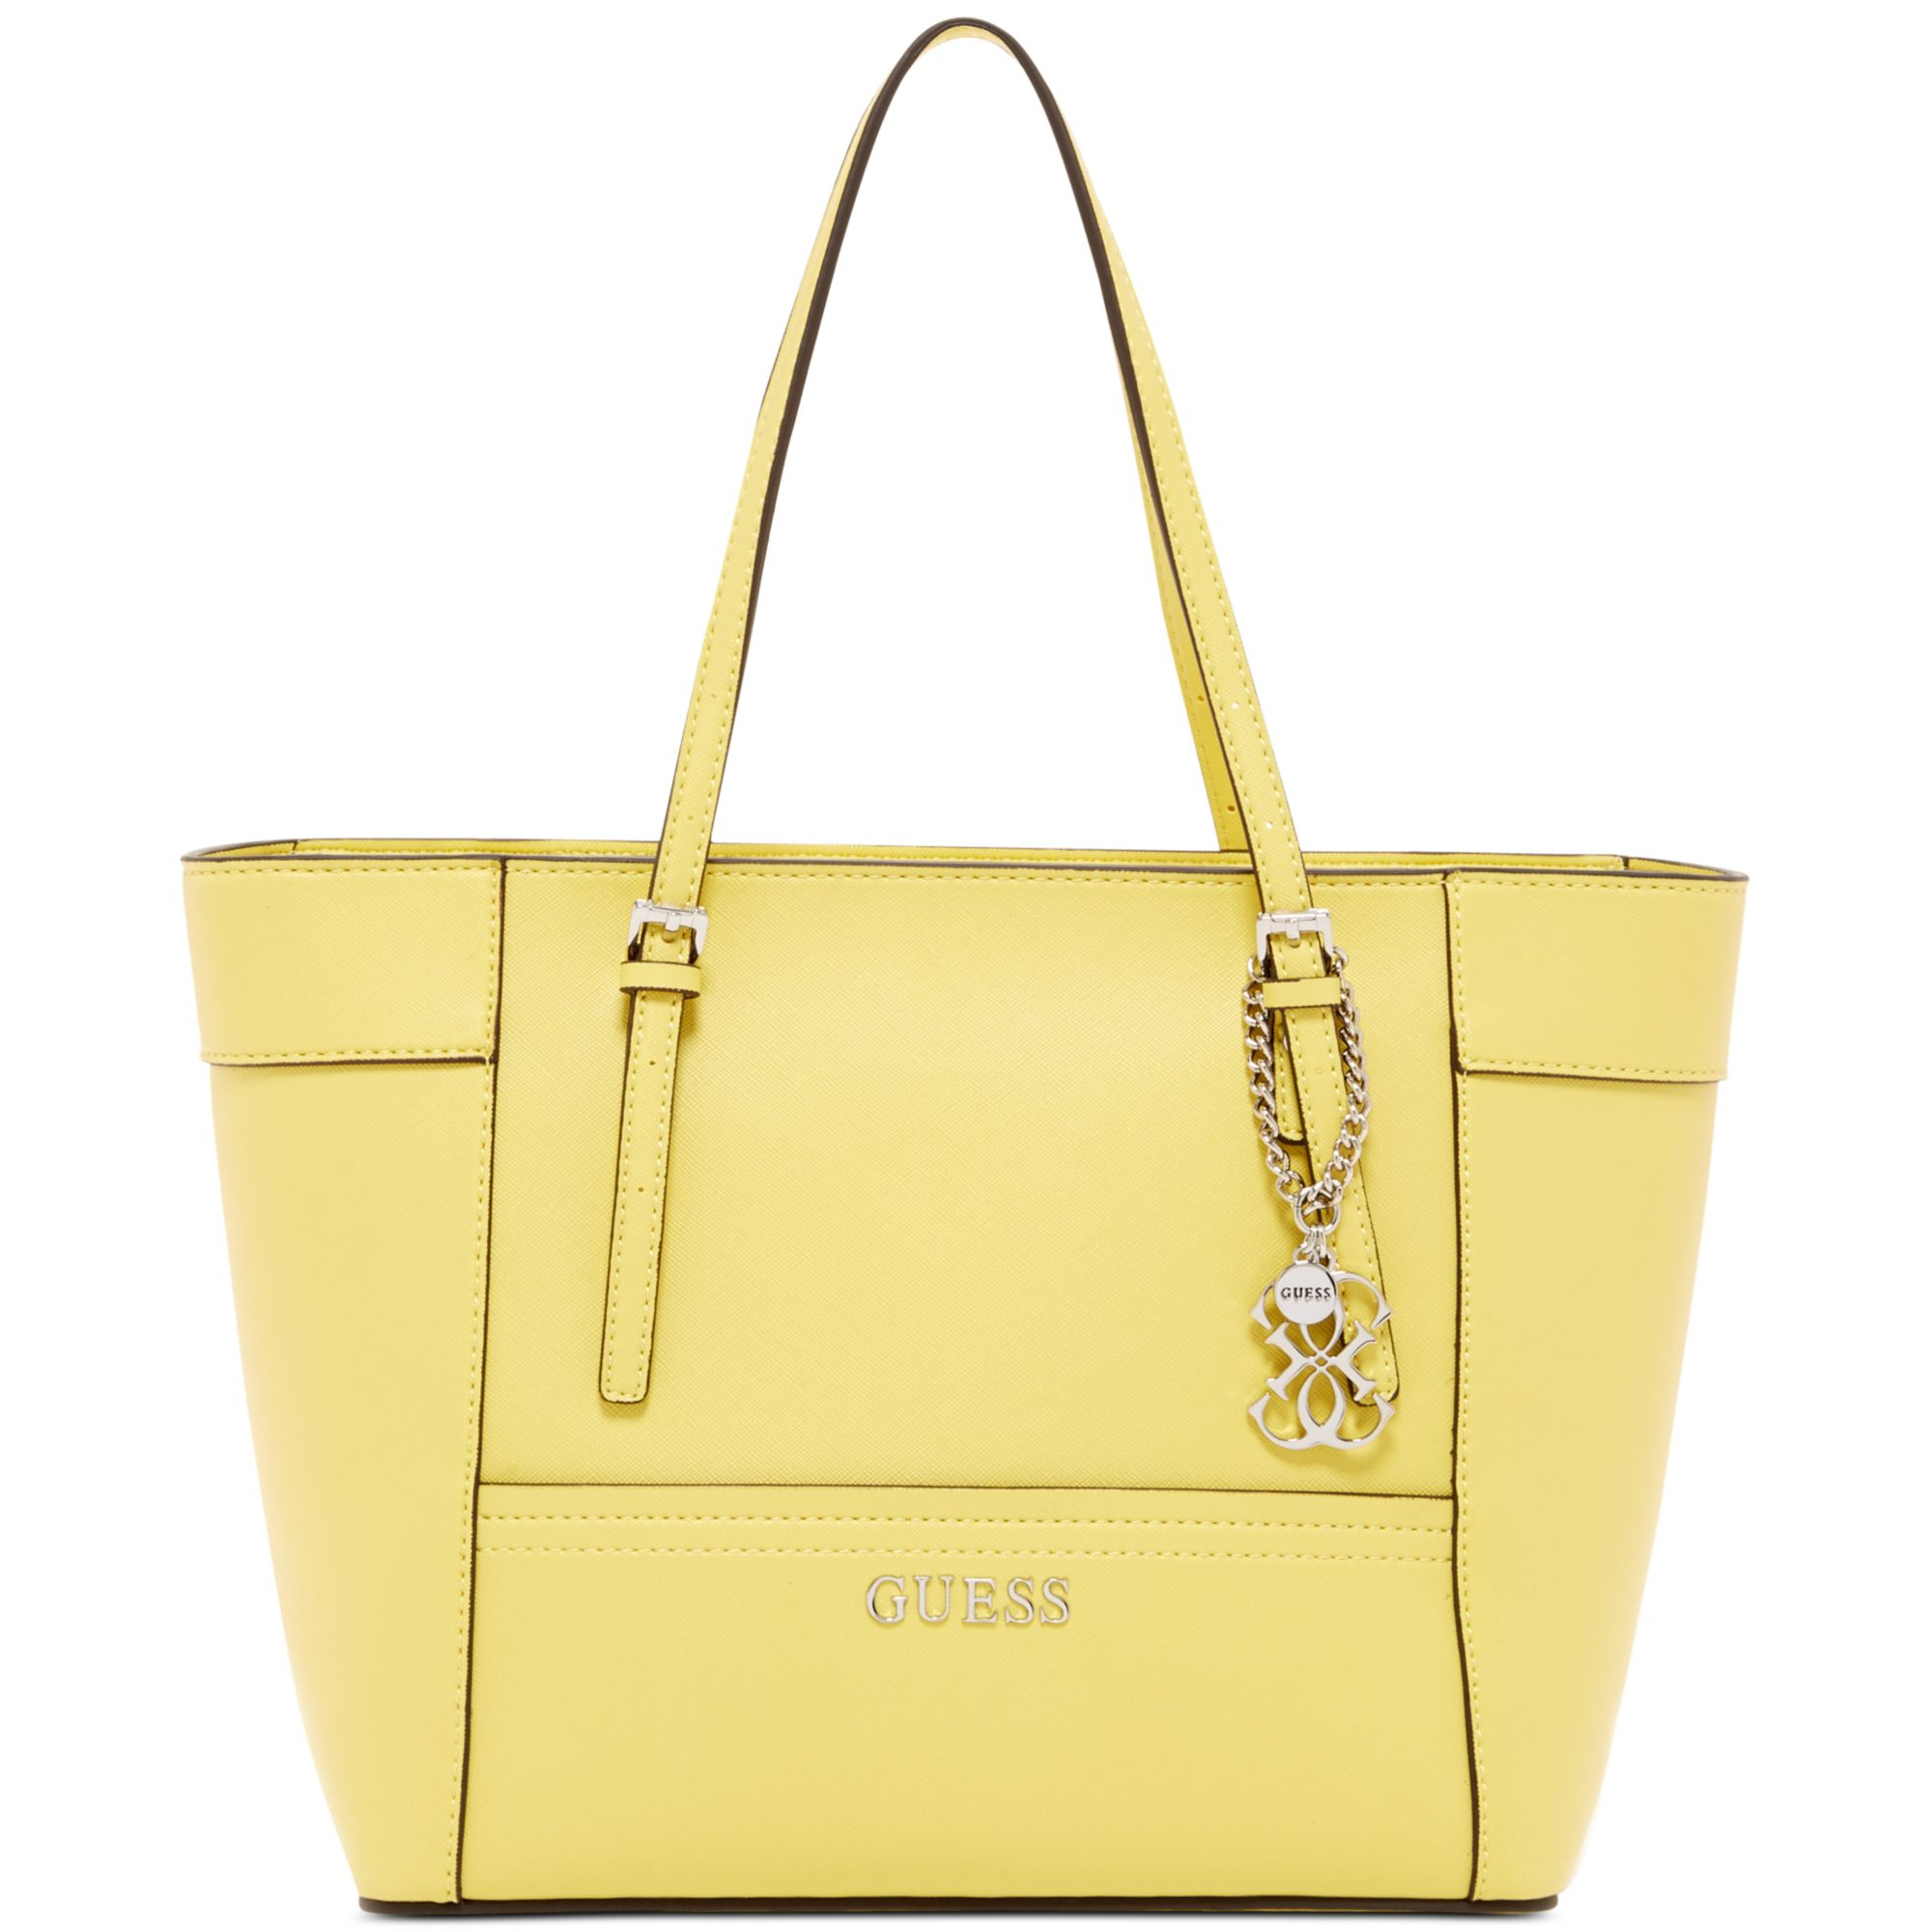 Guess Yellow Handbag